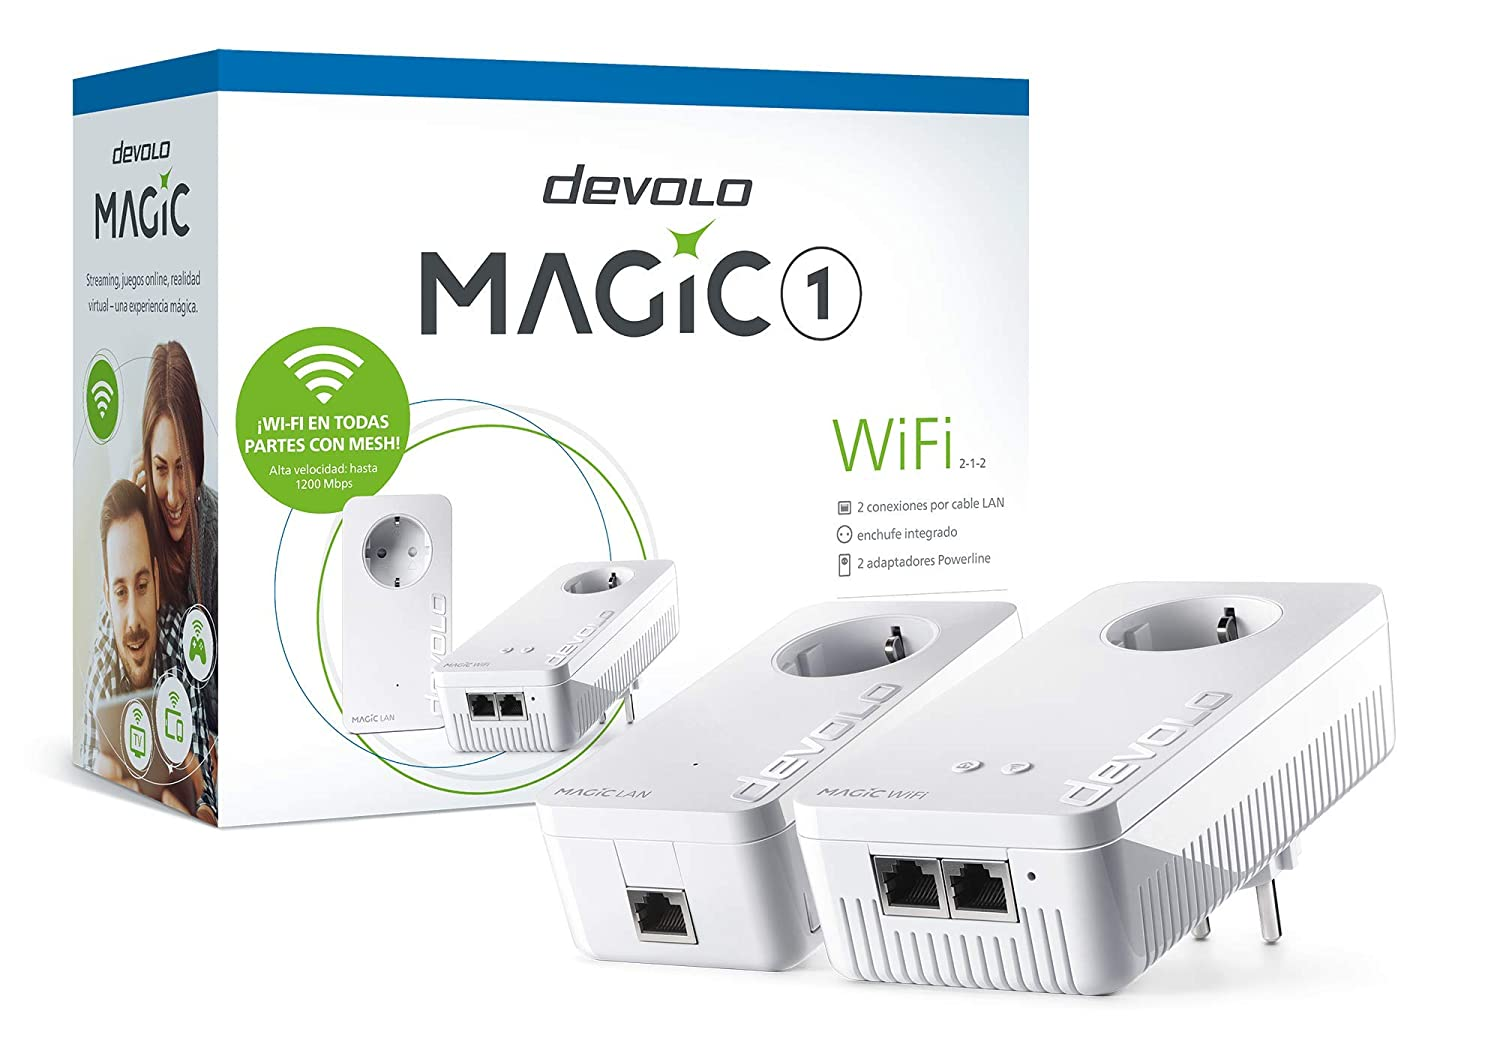 devolo Magic 1 WiFi: Kit Powerline (1200 Mbps LAN y WiFi para la Red doméstica): Devolo: Amazon.es: Informática